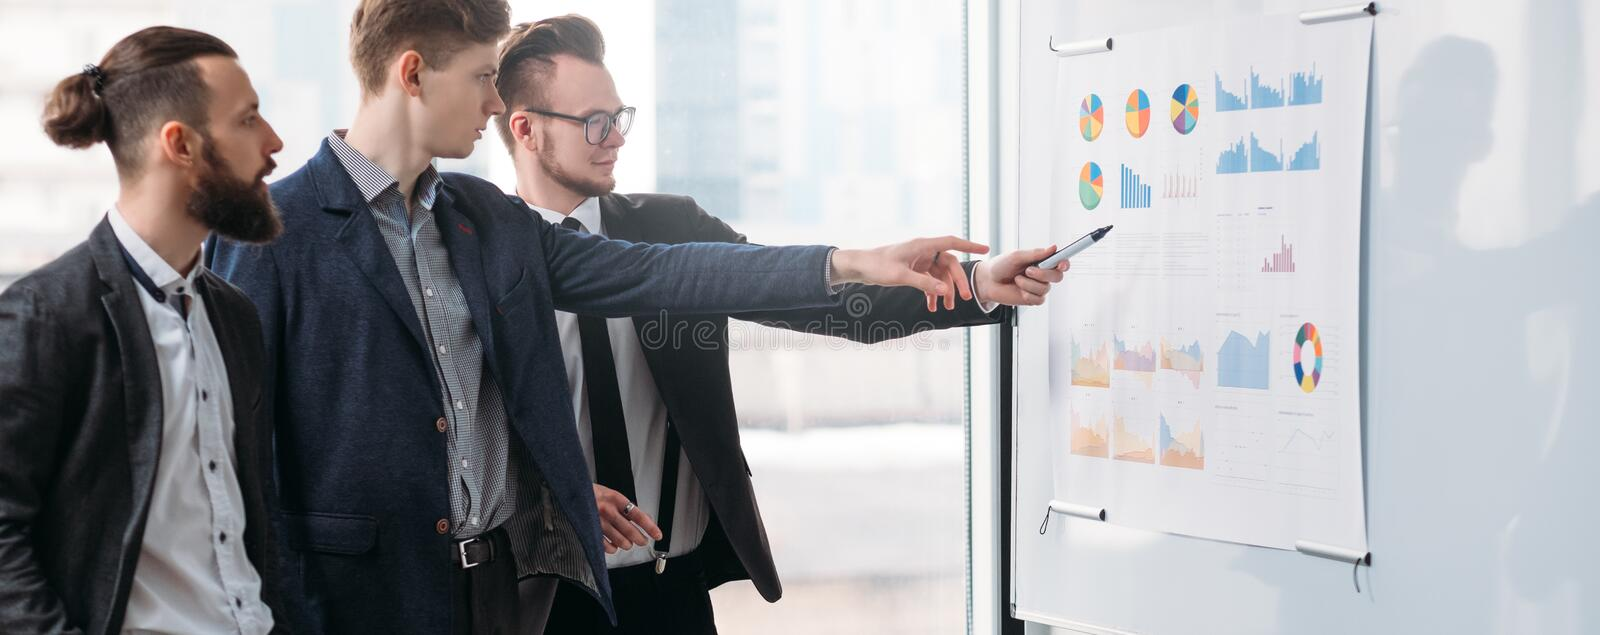 Corporate meeting business strategy planning stock photography